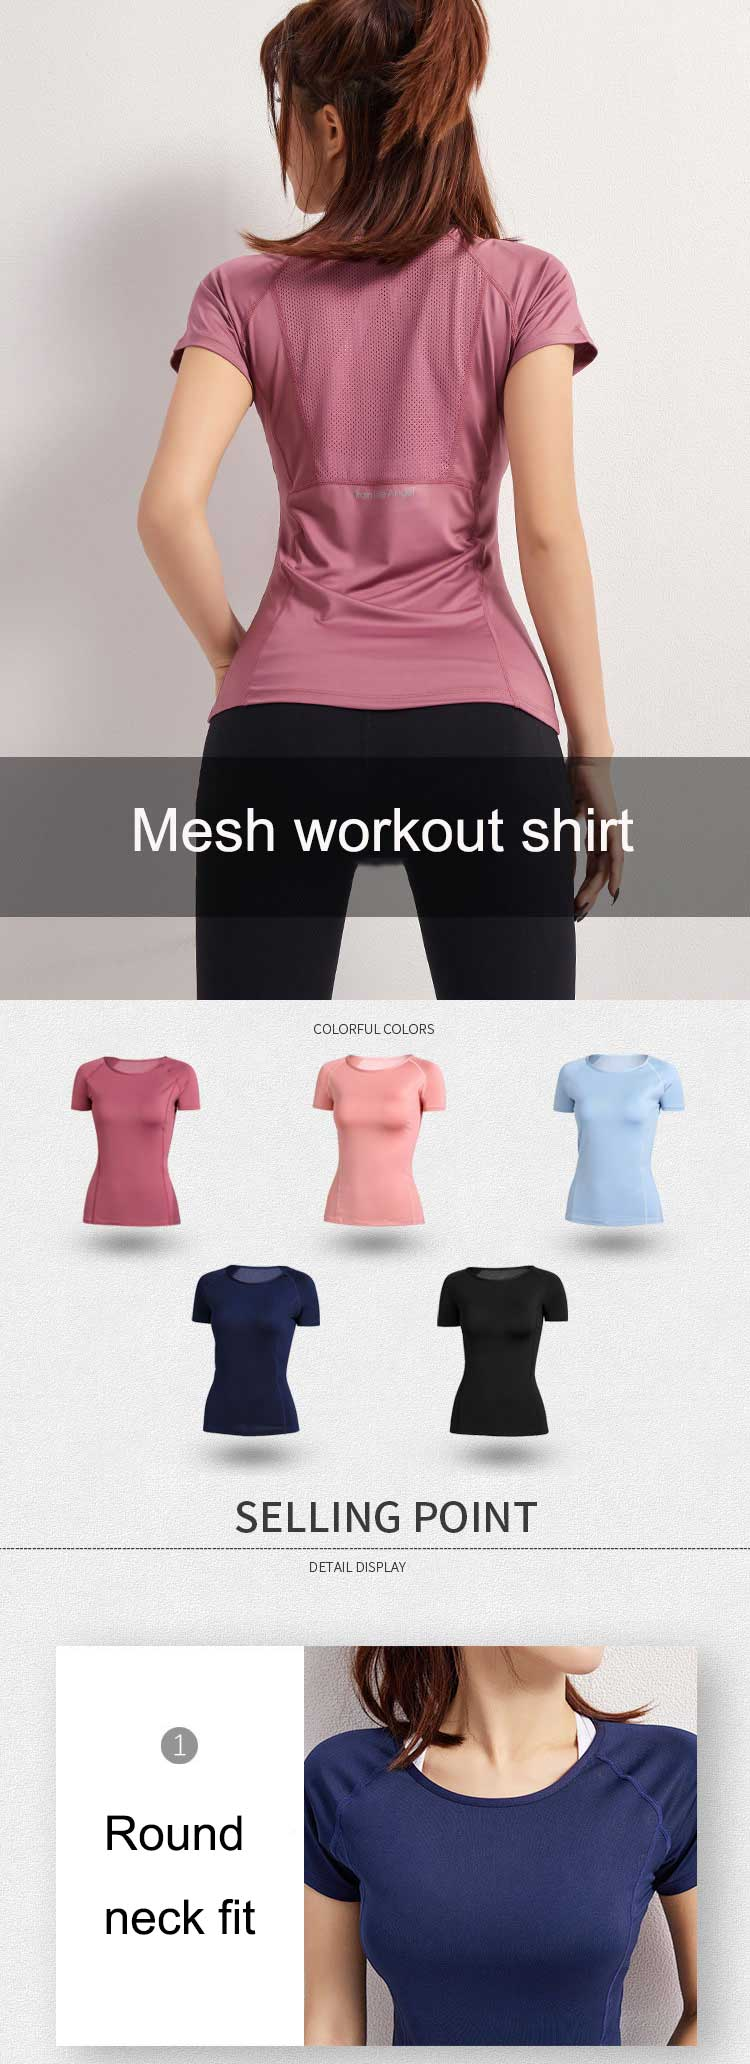 This-is-a-soft,-mesh-workout-shirt-that-will-make-your-sports-journey-even-better.-